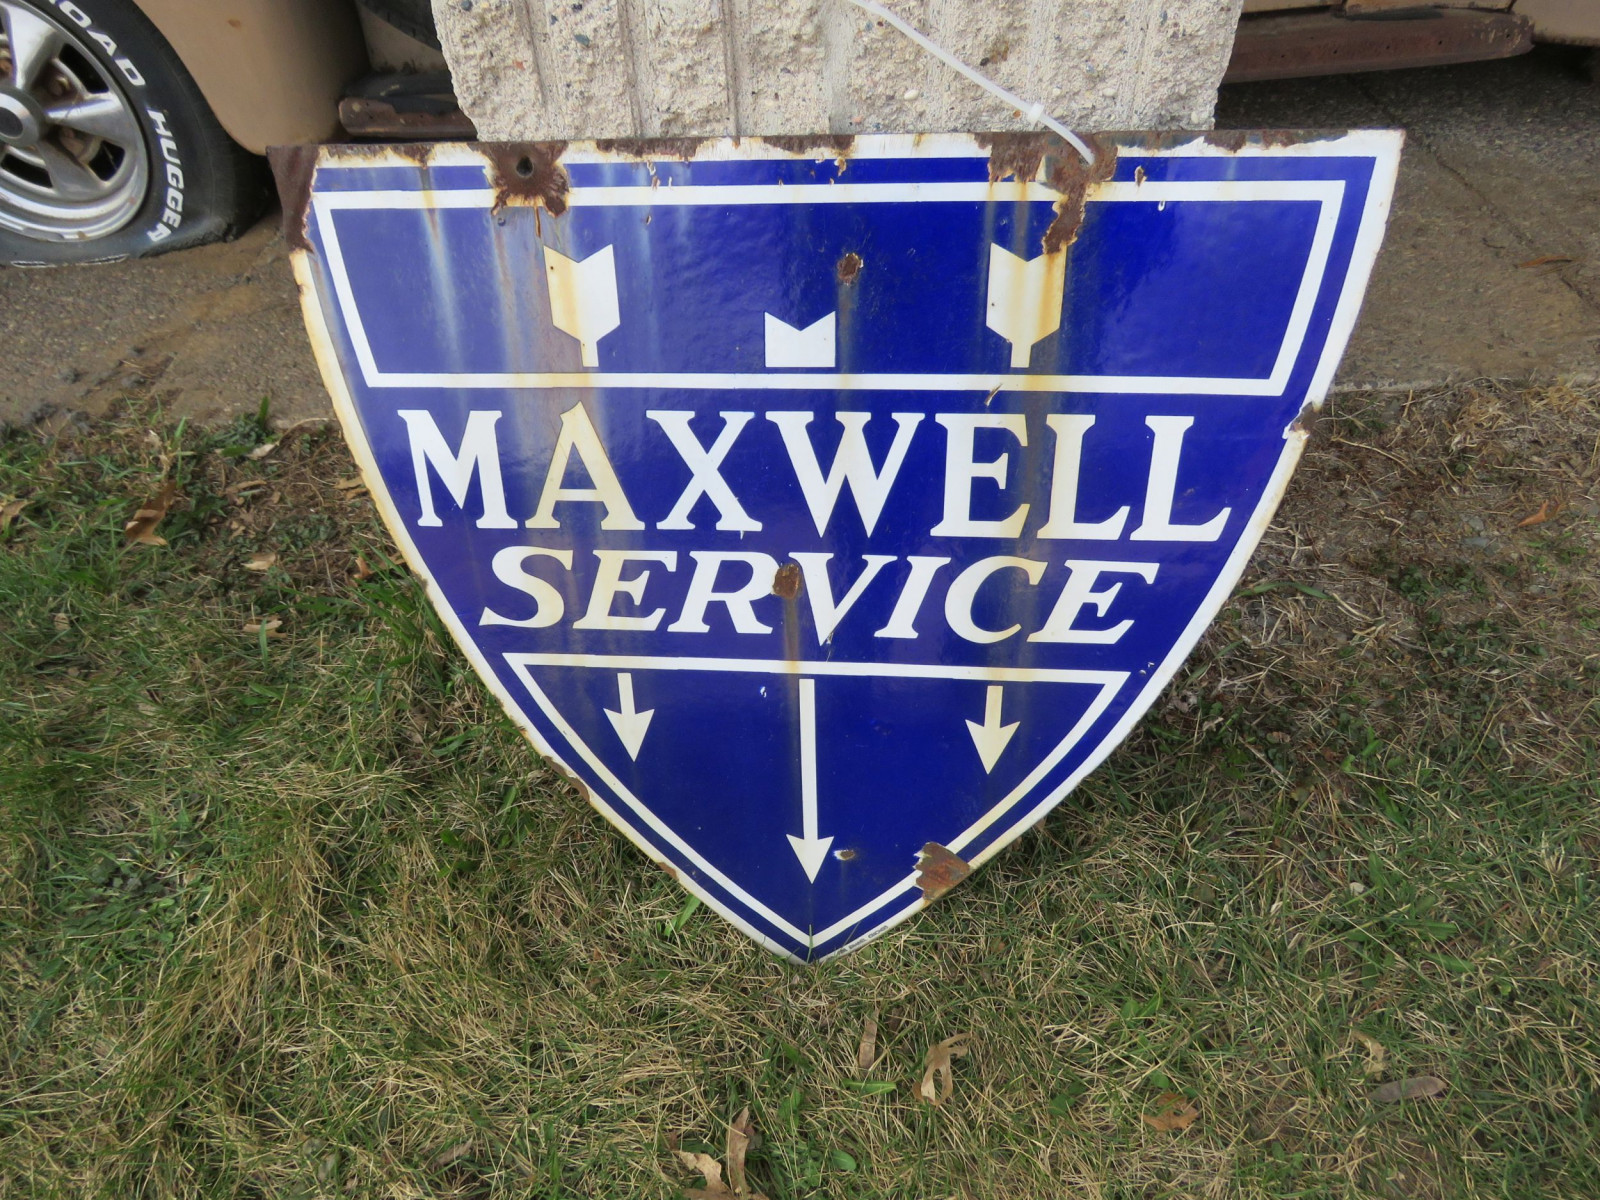 Maxwell Double sided Porcelain Sign 22x24 inches - Image 2